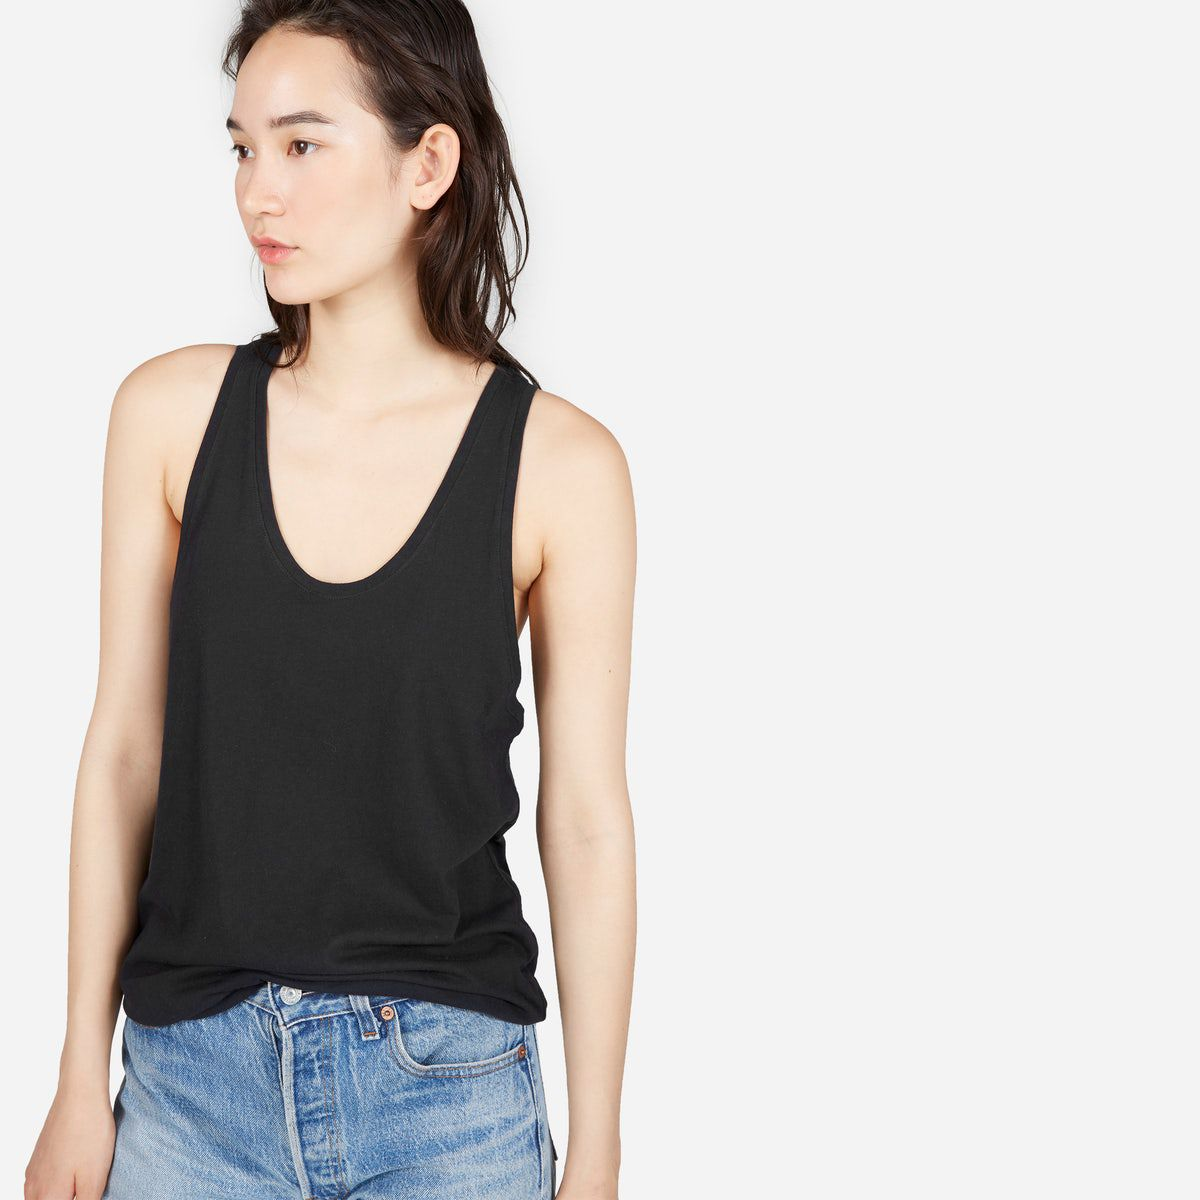 A model in a black tank top and jeans